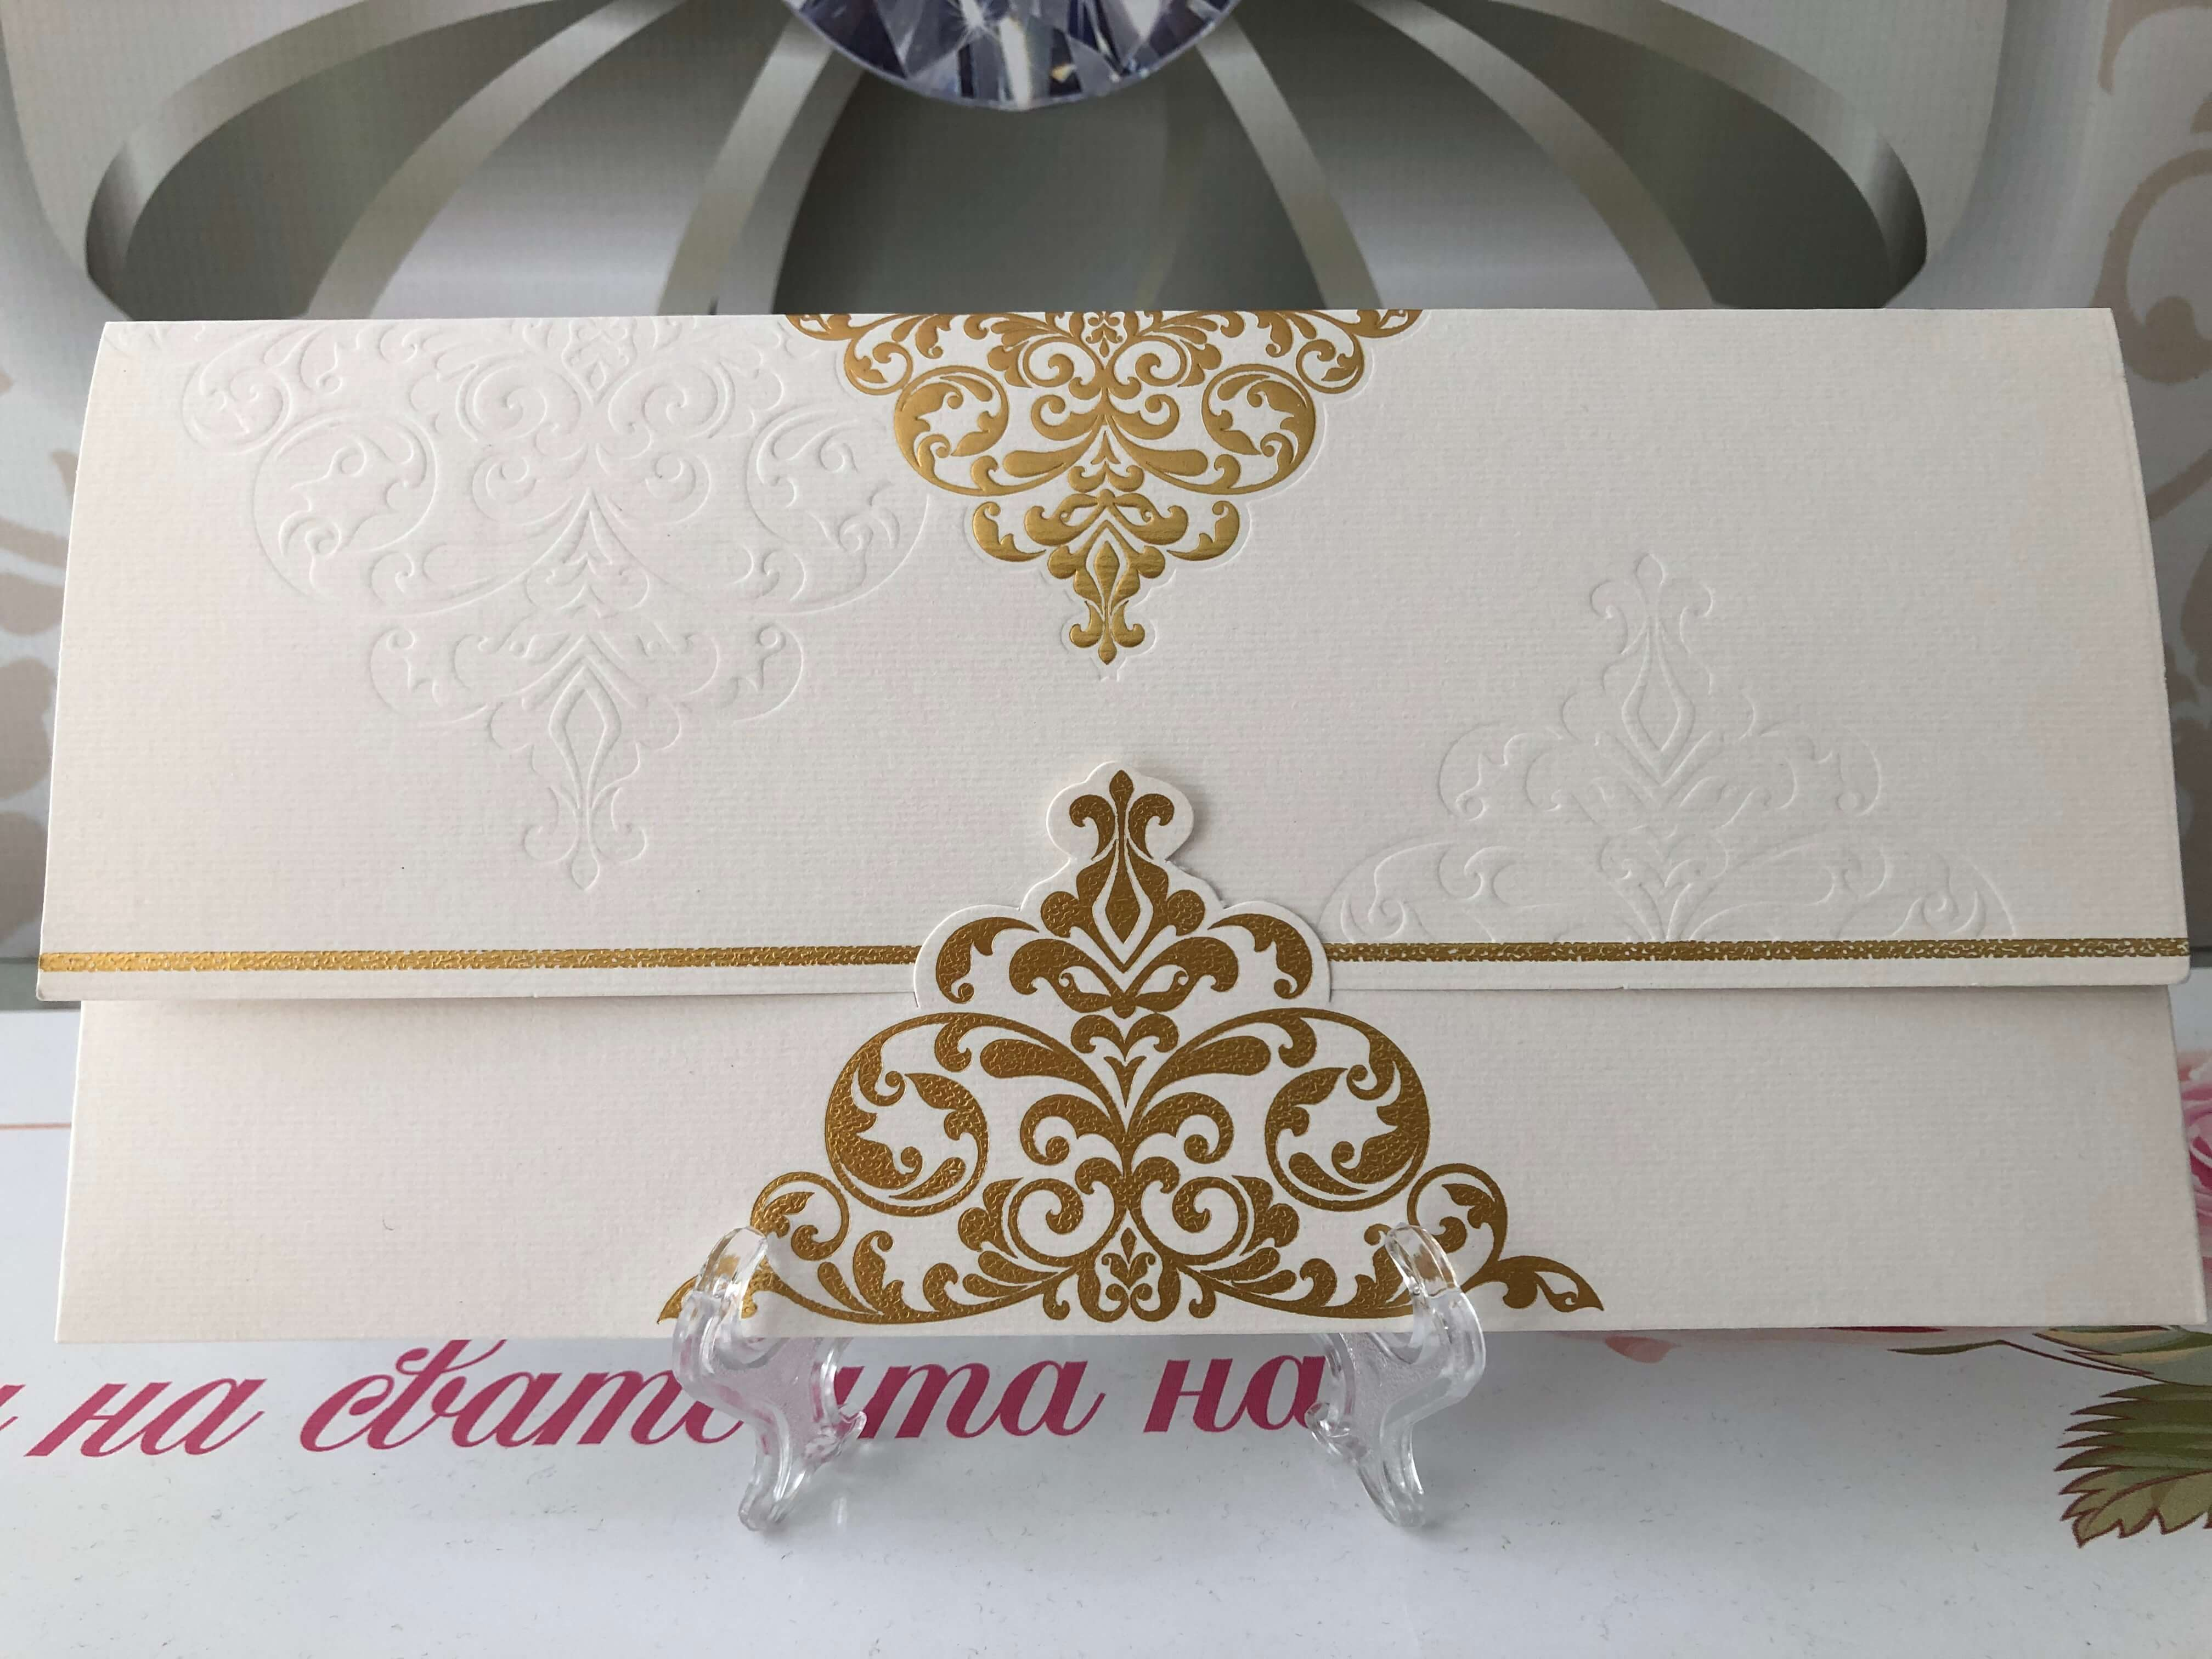 asian wedding cards uk - weddingcardsuk.com